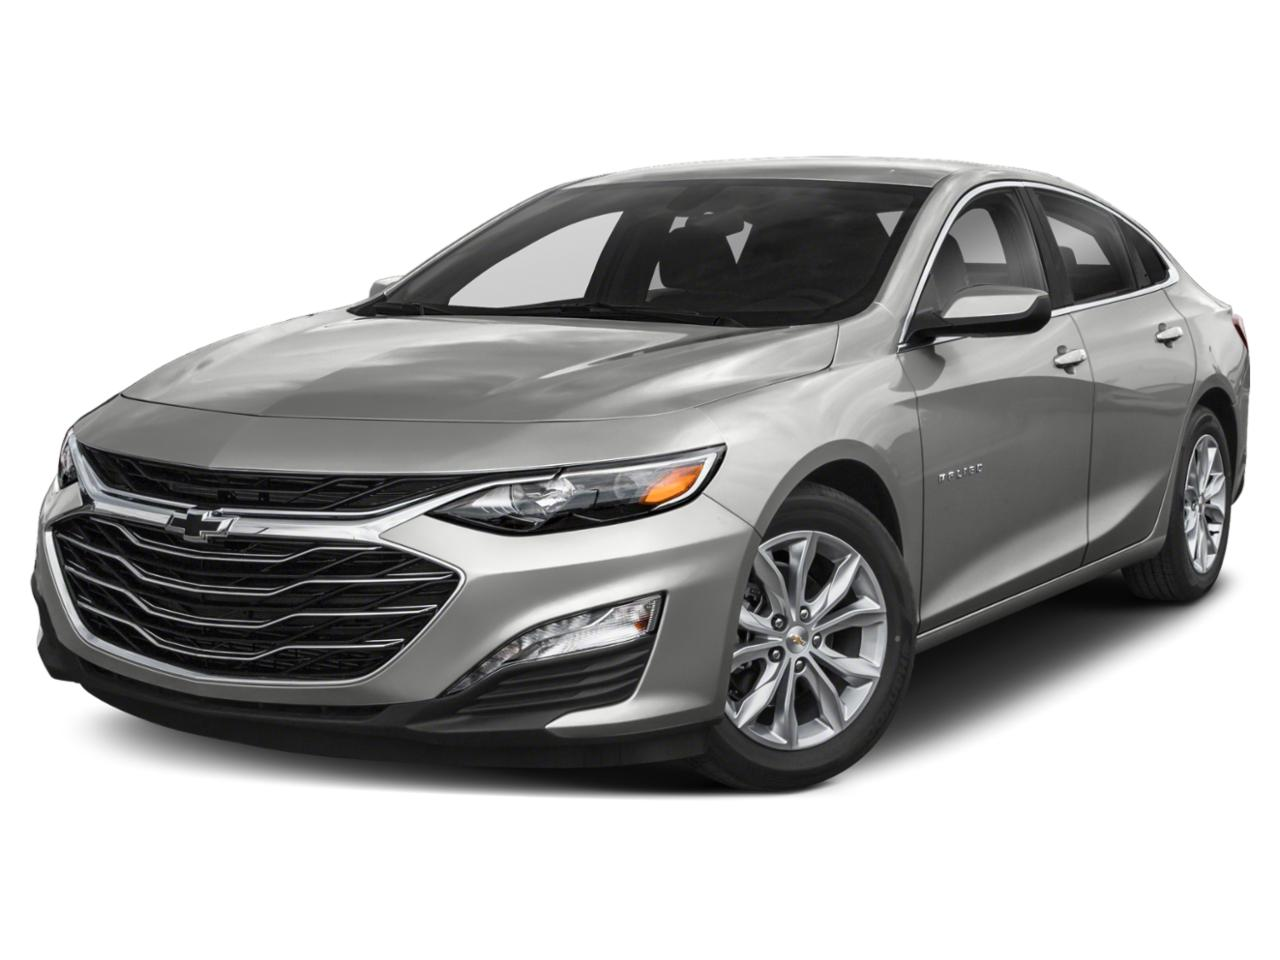 2020 Chevrolet Malibu Vehicle Photo in Columbia, MO 65203-3903